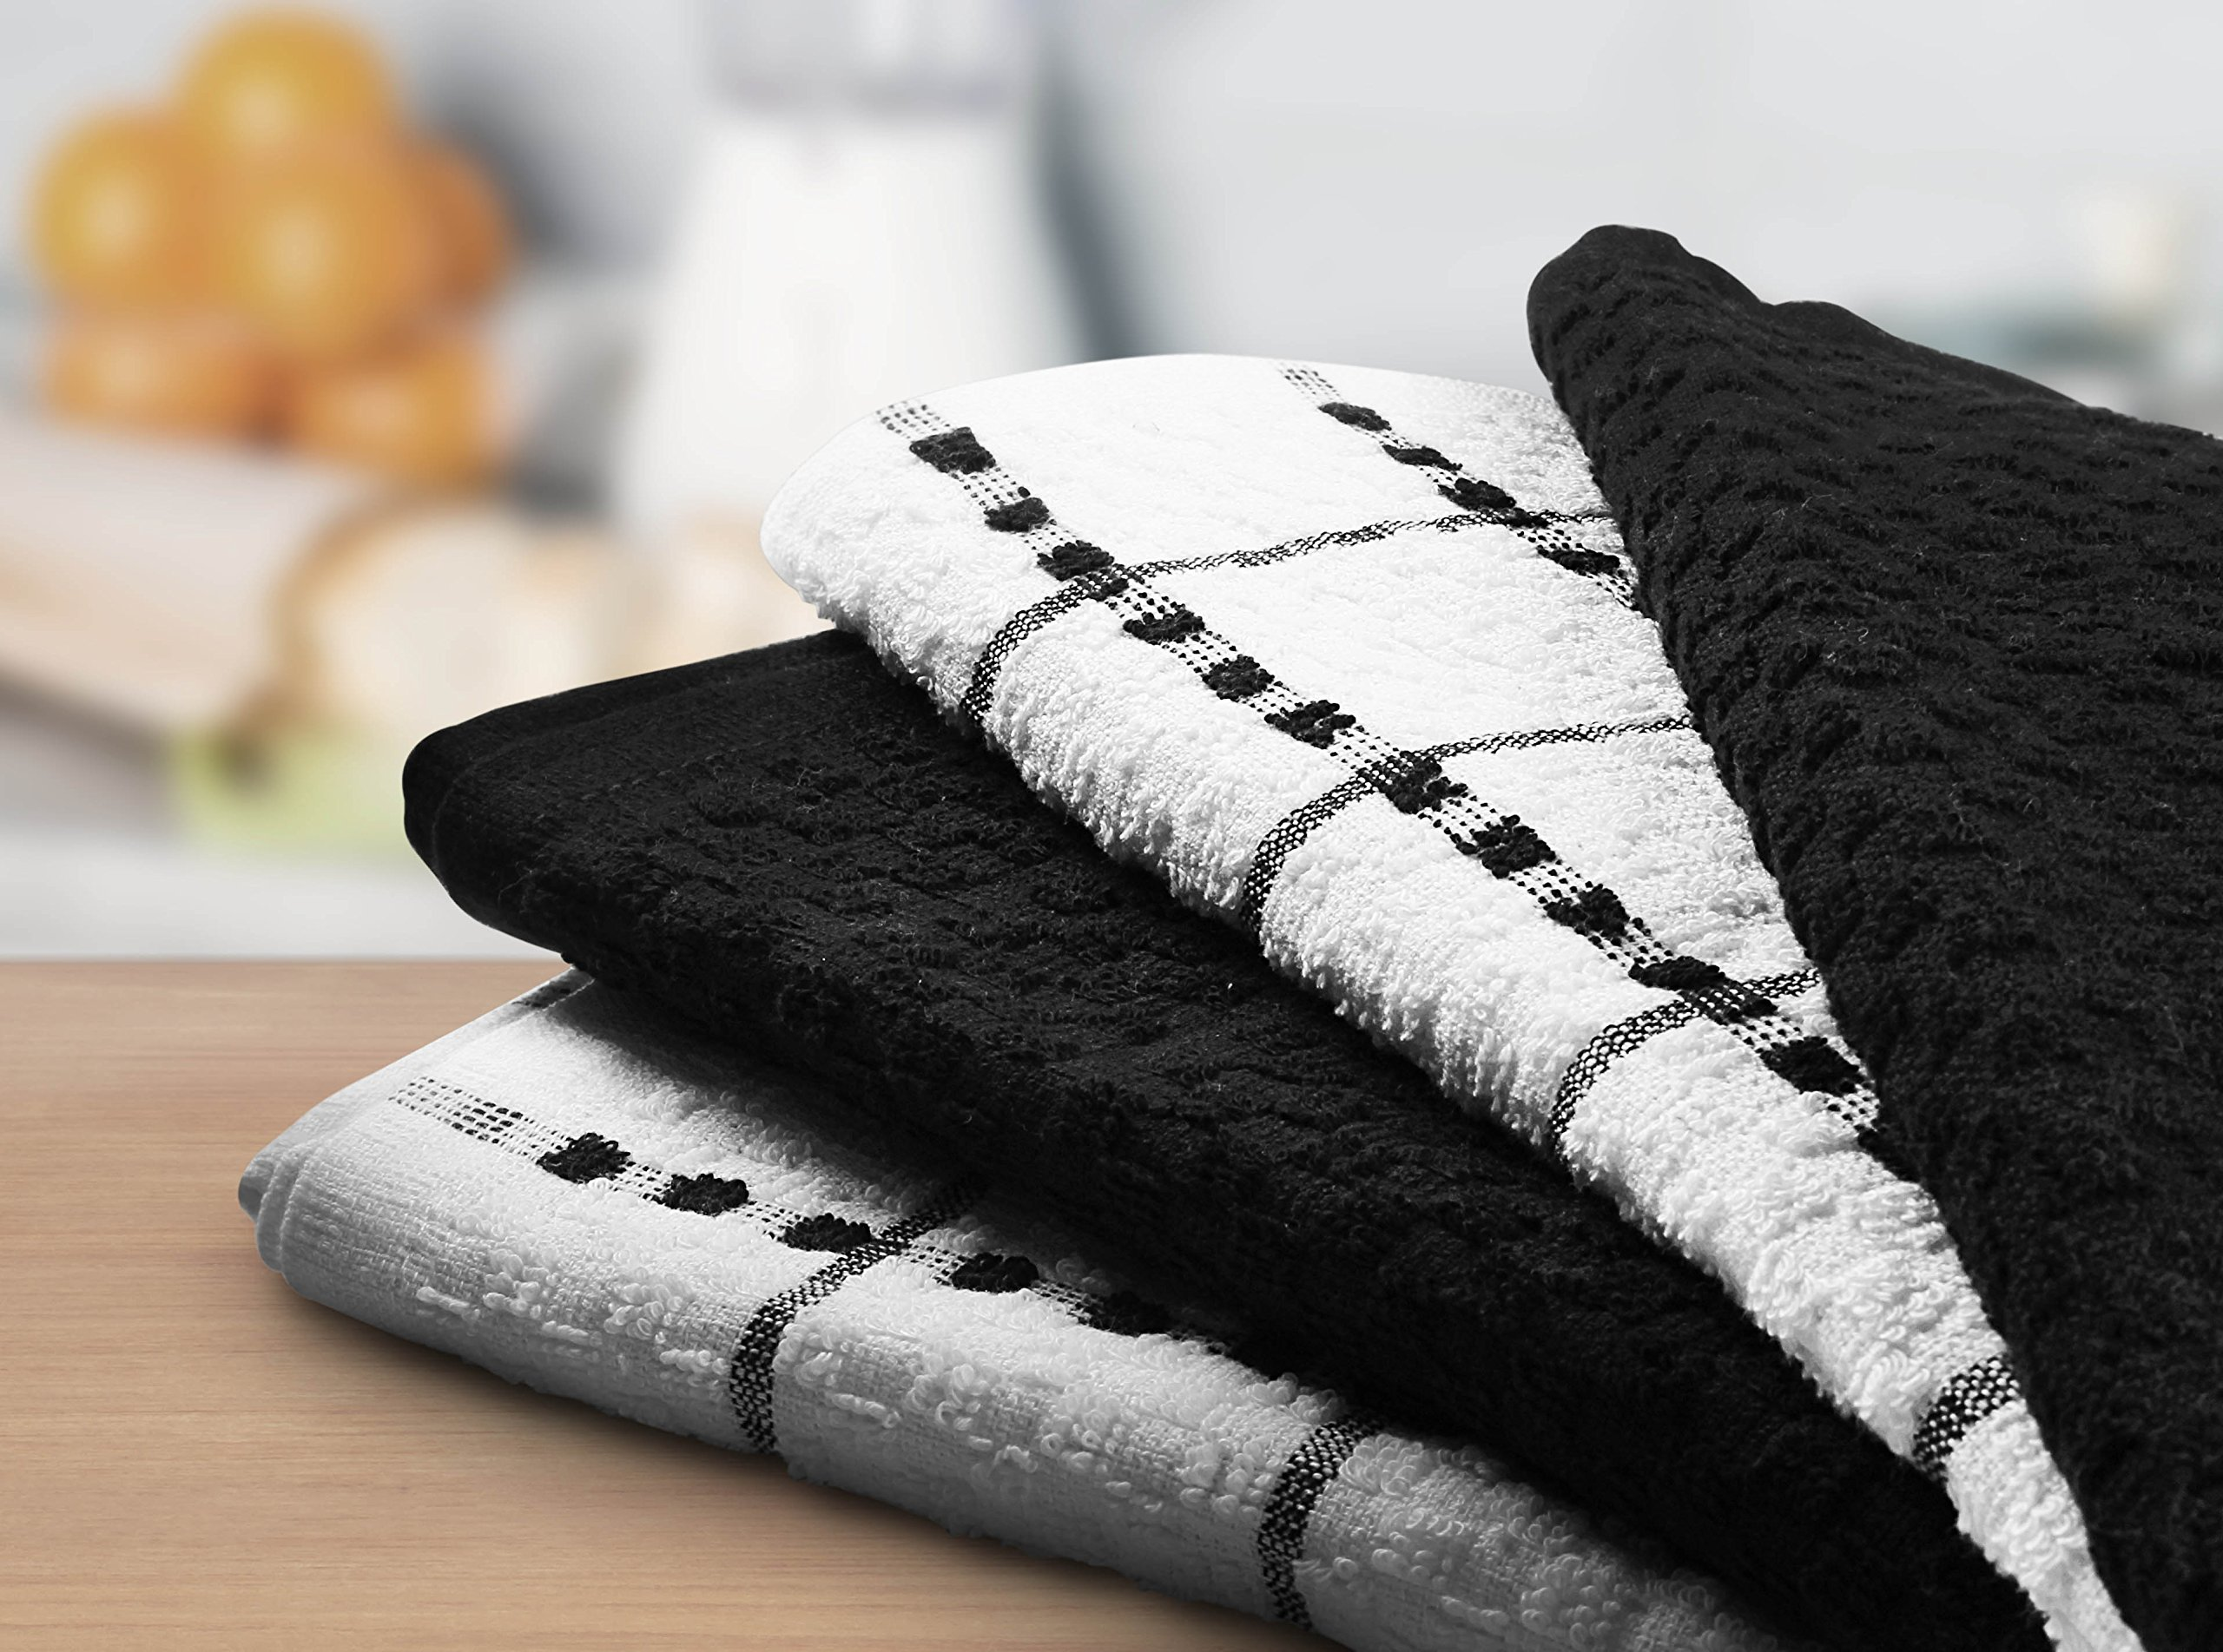 Utopia Towels 12 Pack Kitchen Towels 15 x 25 inch Cotton Dish Towels, Tea Towels and bar Towels by Utopia Towels (Image #5)